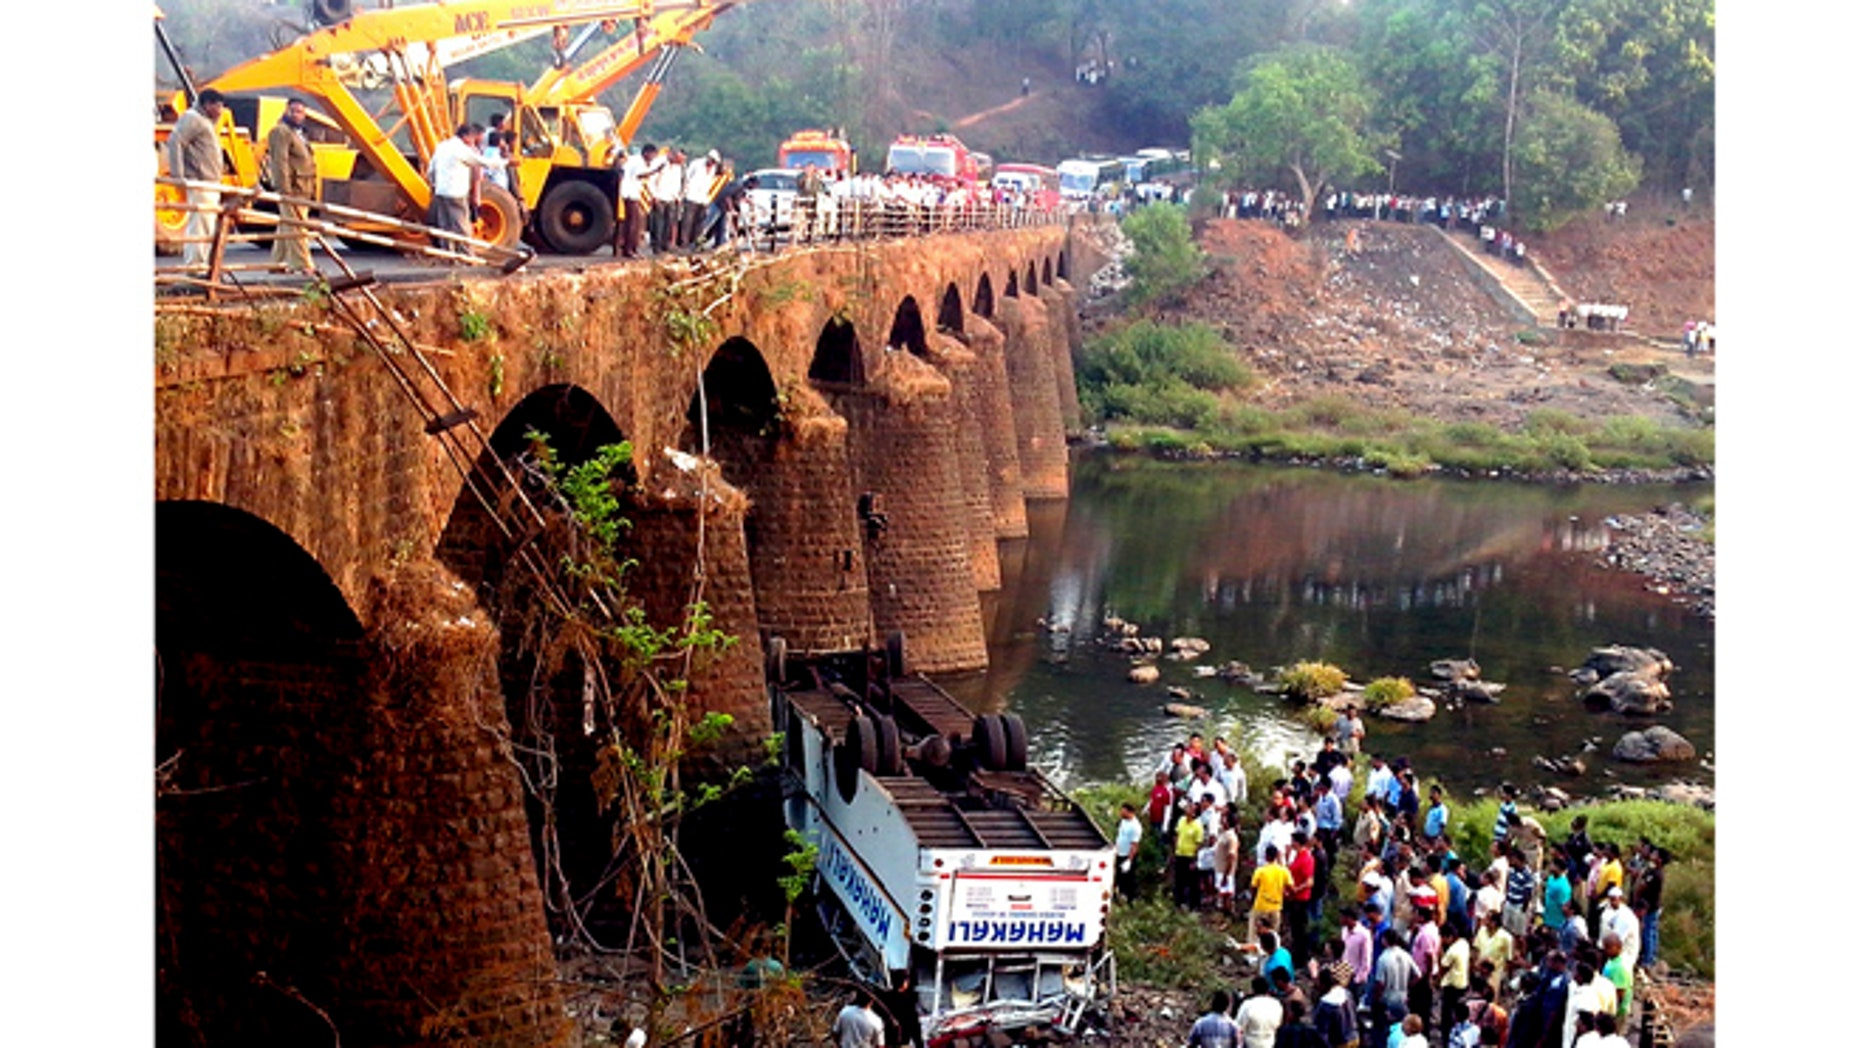 March 19, 2013: Rescuers and others gather at the site of a bus accident in Ratnagiri district, in the western Indian state of Maharashtra.